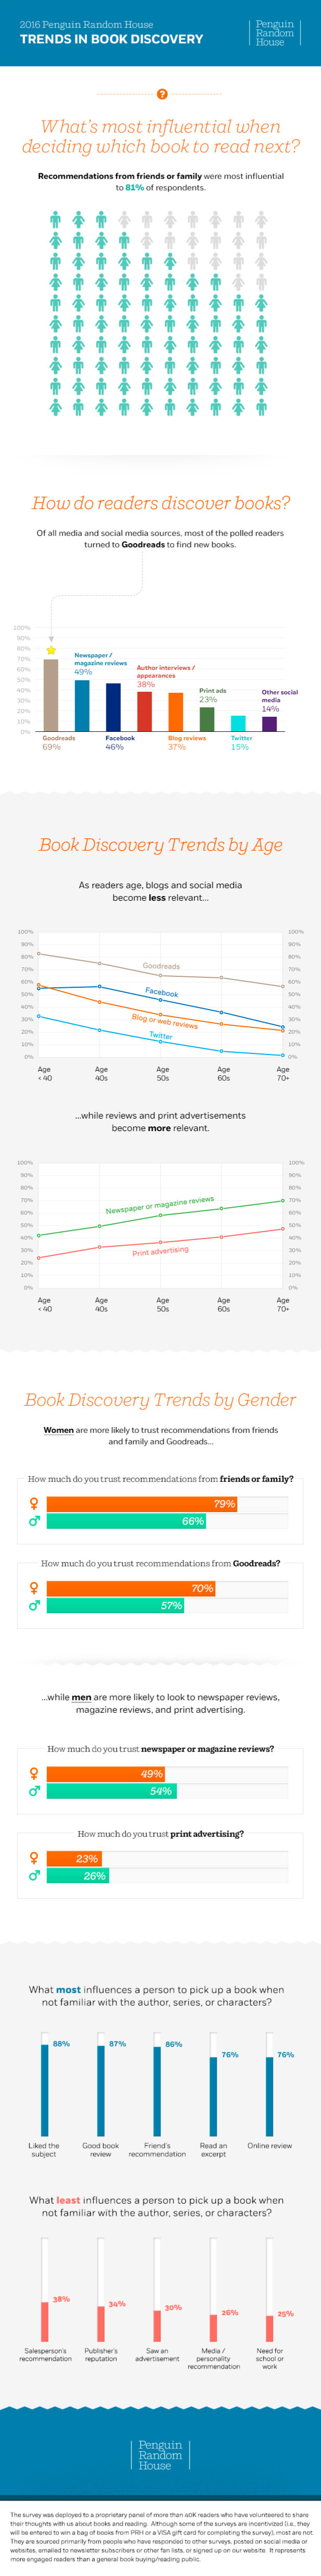 2016 trends in book discovery #infographic